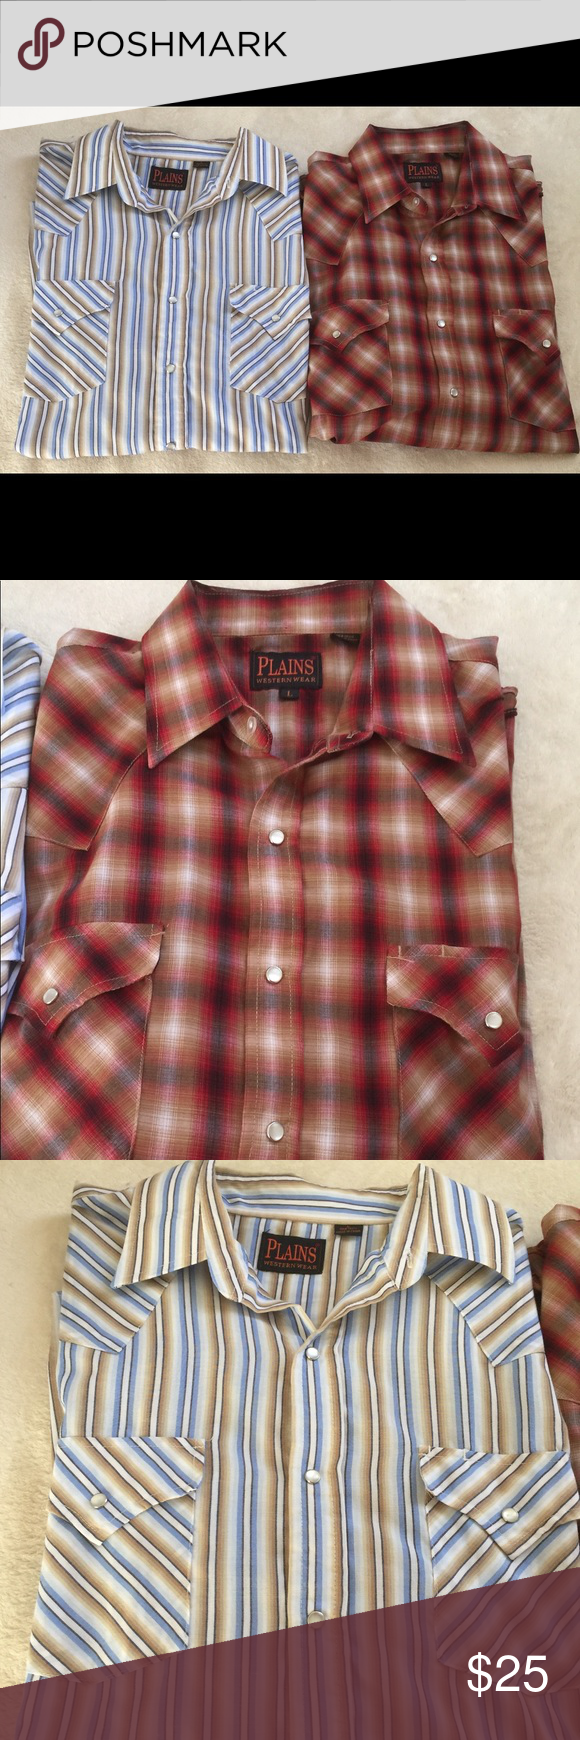 Lot of Two Men's PLAINS Western PEARL SNAP Shirts Lot of Two Men's PLAINS Western PEARL SNAP Short Sleeve Shirts Striped / Plaid  Size: Large  Materials: 65% Polyester & 35% Cotton   Gently Used; No Flaws  Comes from a clean and smoke free home.  Thanks for shopping! plains Shirts Casual Button Down Shirts